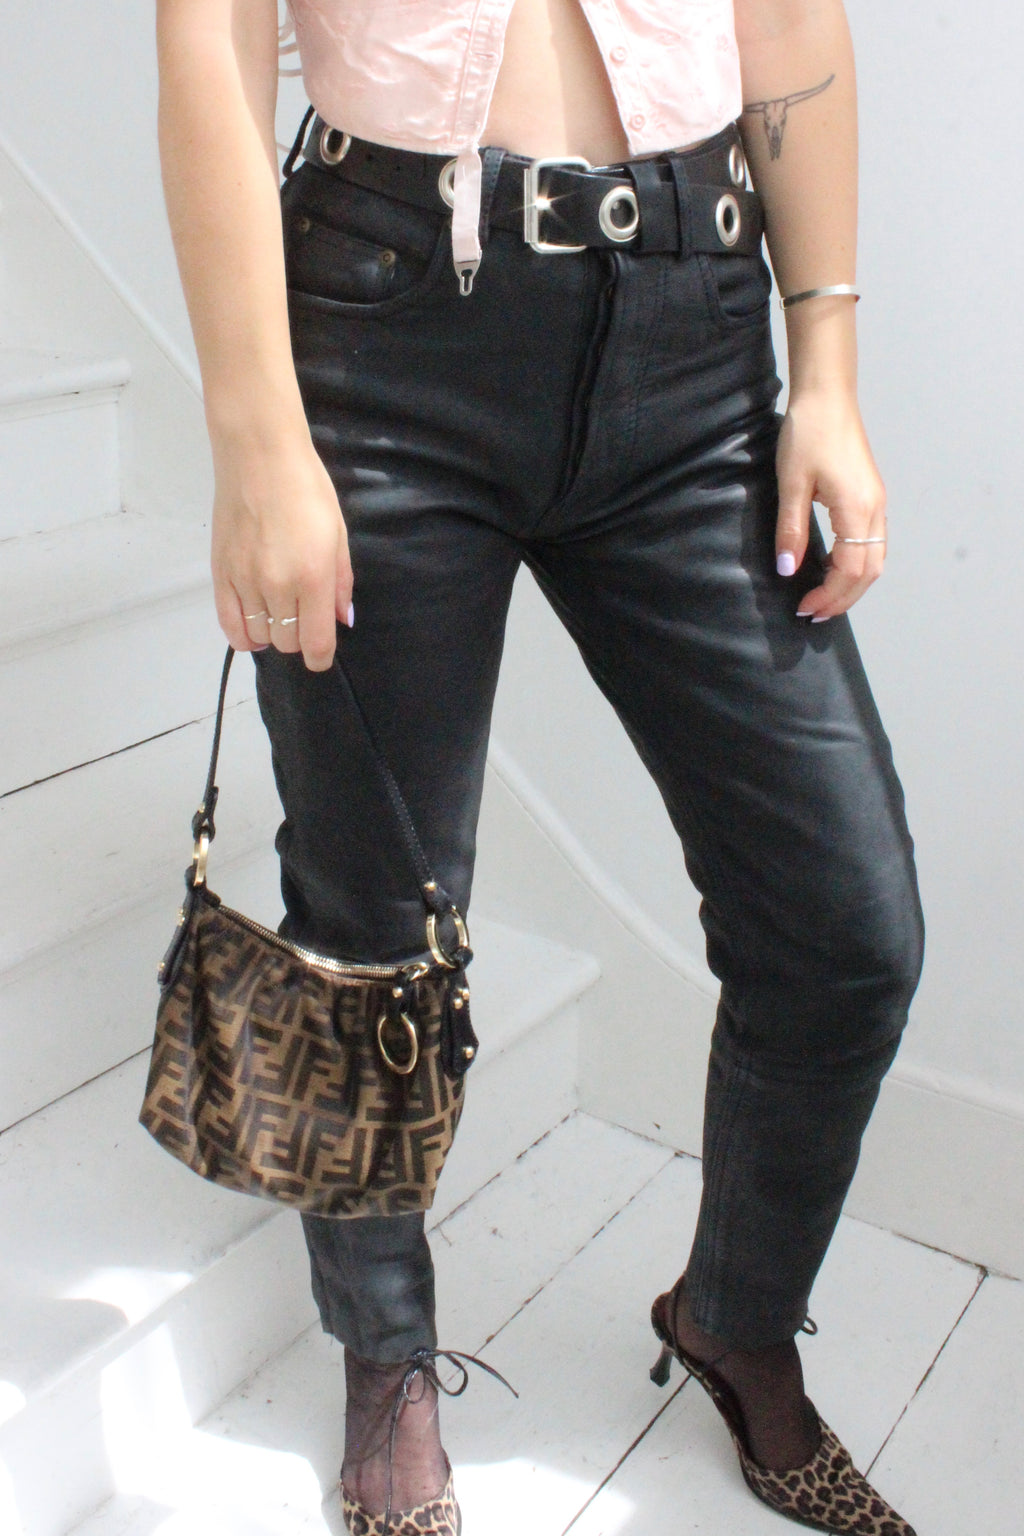 Vintage 90s Black High-Waisted Matt Leather Biker Trousers